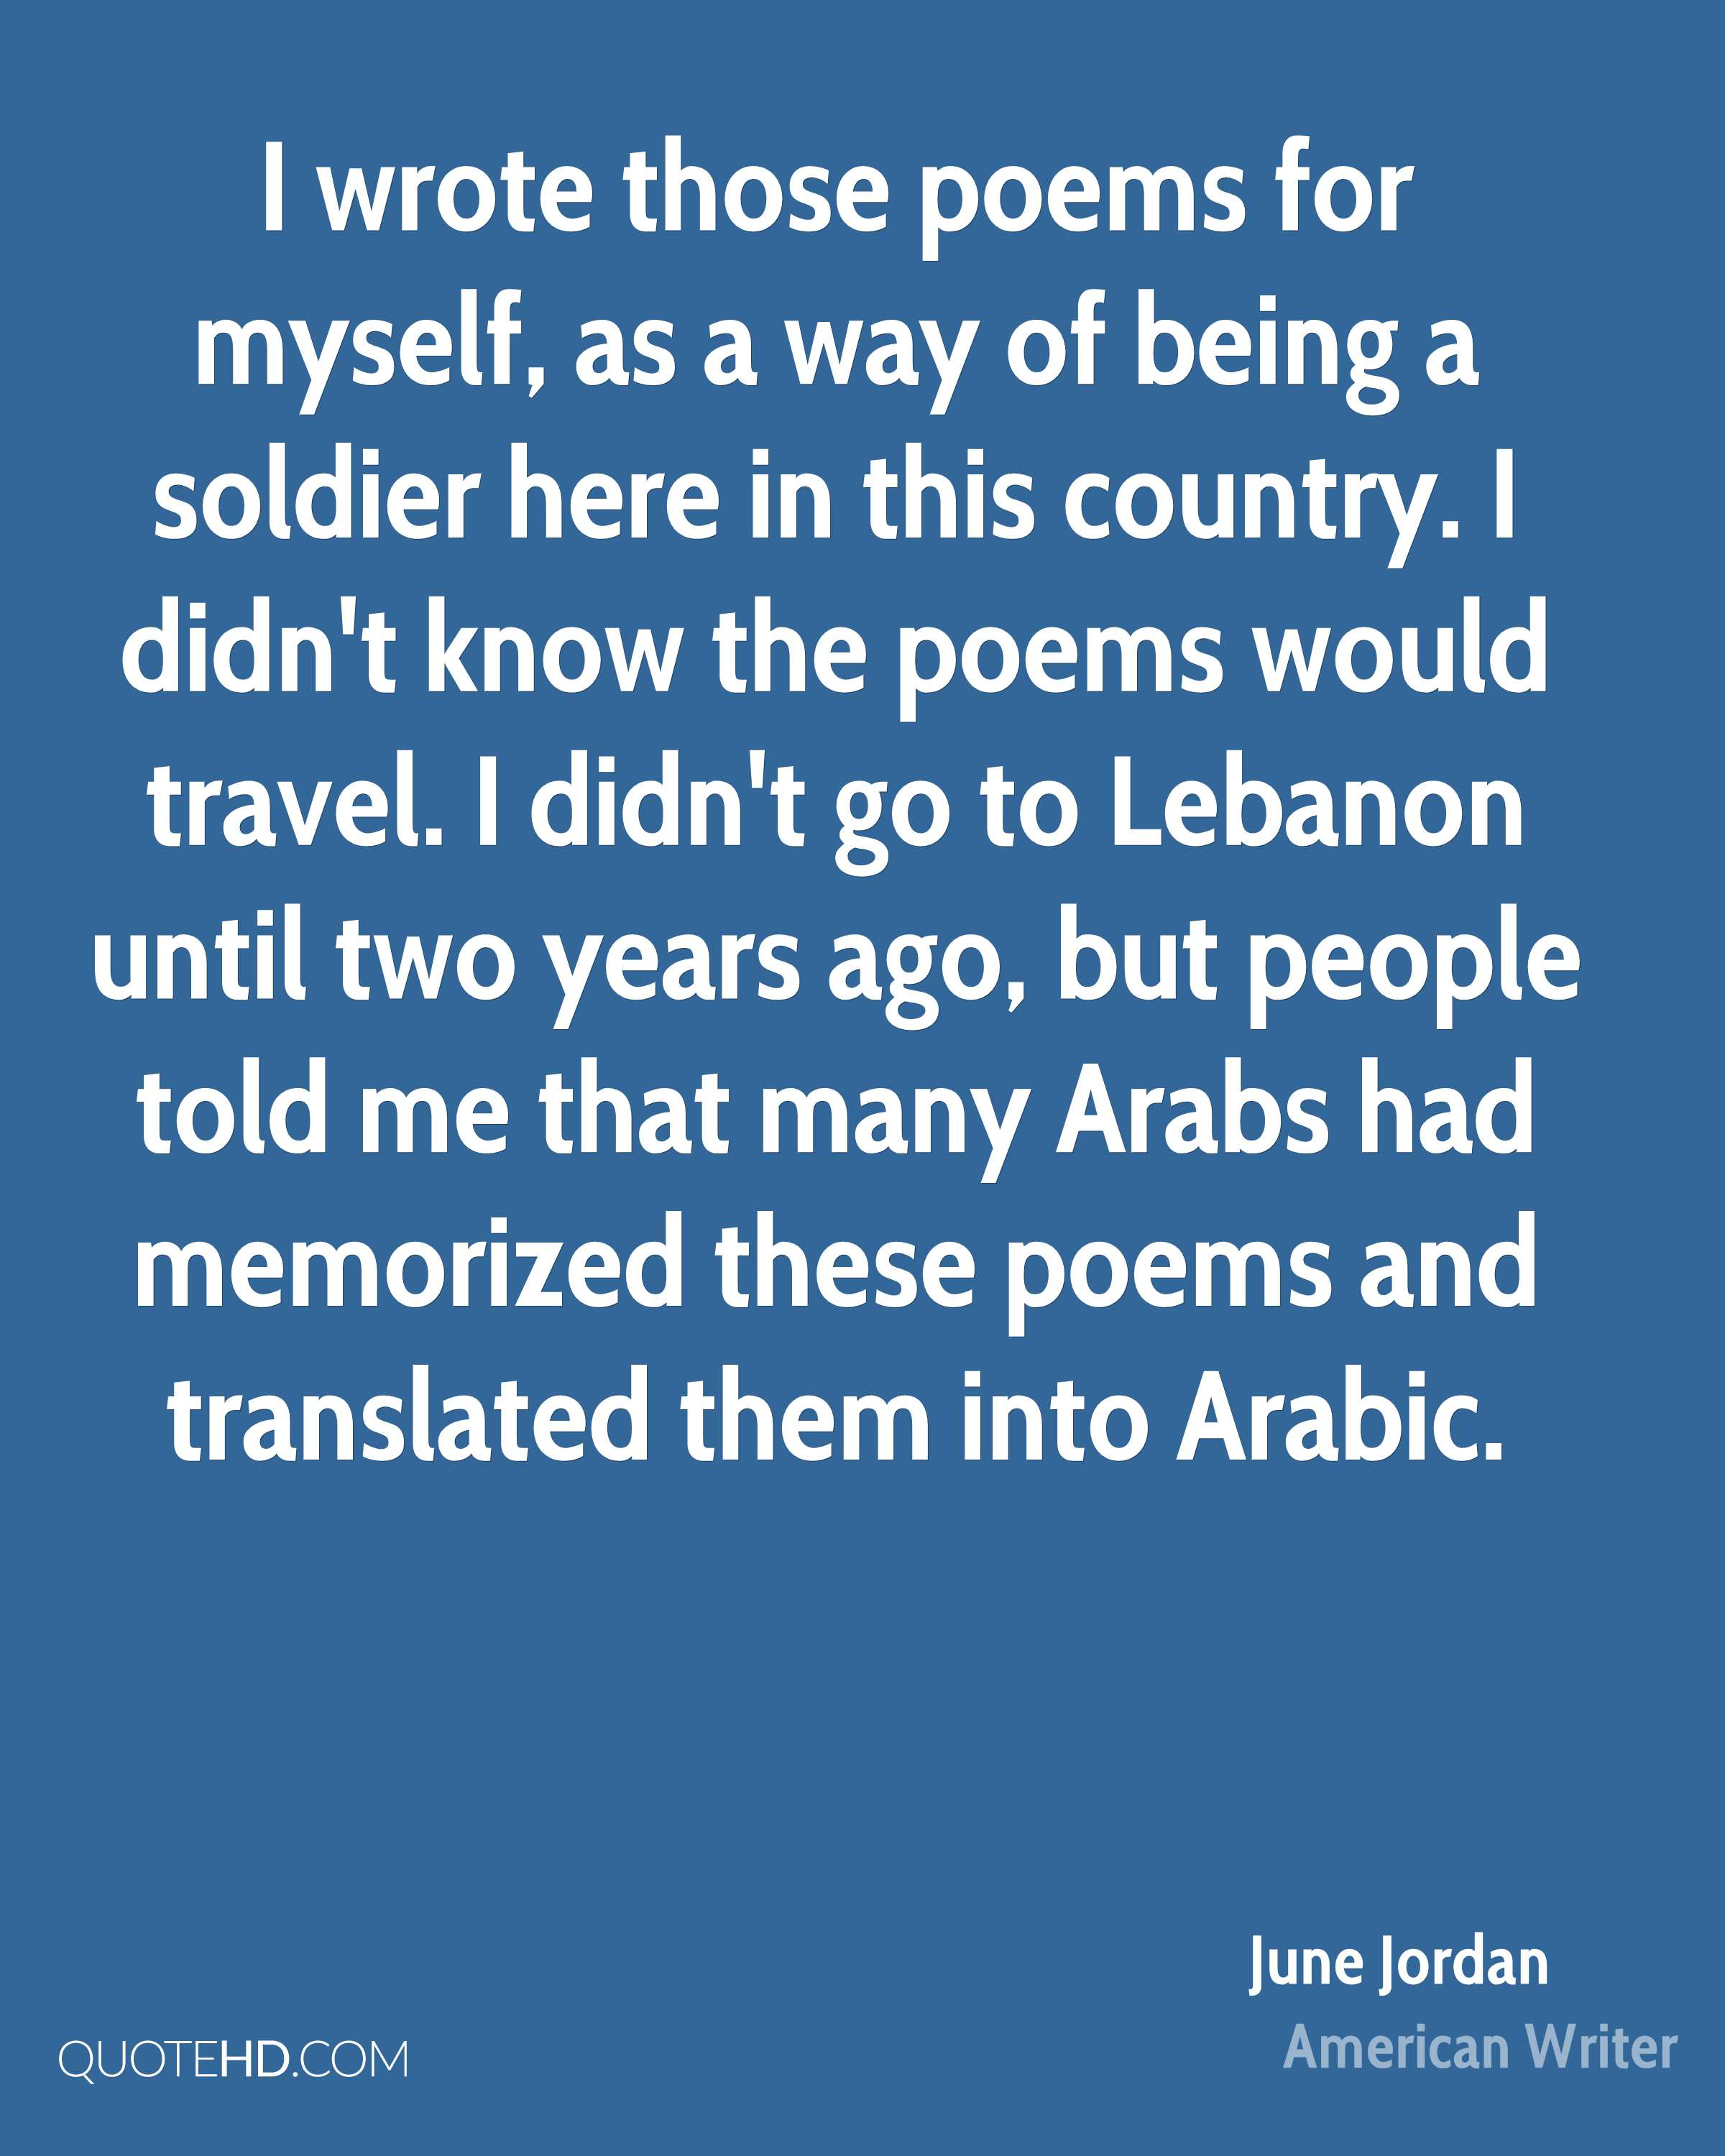 I wrote those poems for myself, as a way of being a soldier here in this country. I didn't know the poems would travel. I didn't go to Lebanon until two years ago, but people told me that many Arabs had memorized these poems and translated them into Arabic.